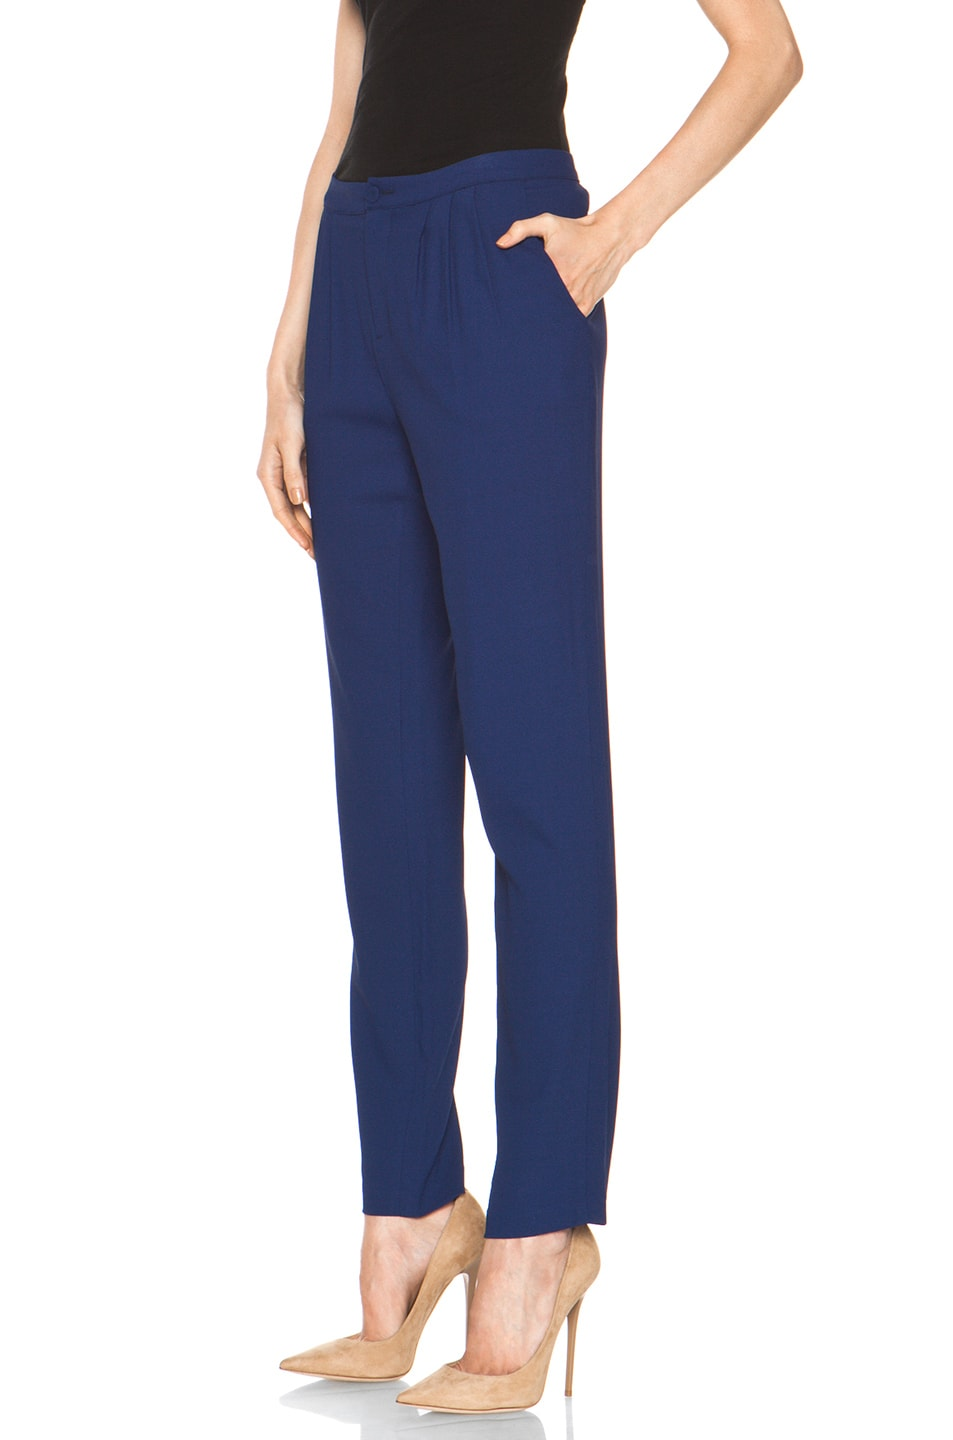 Image 2 of Girl. by Band of Outsiders Ami Pant in Twilight Blue